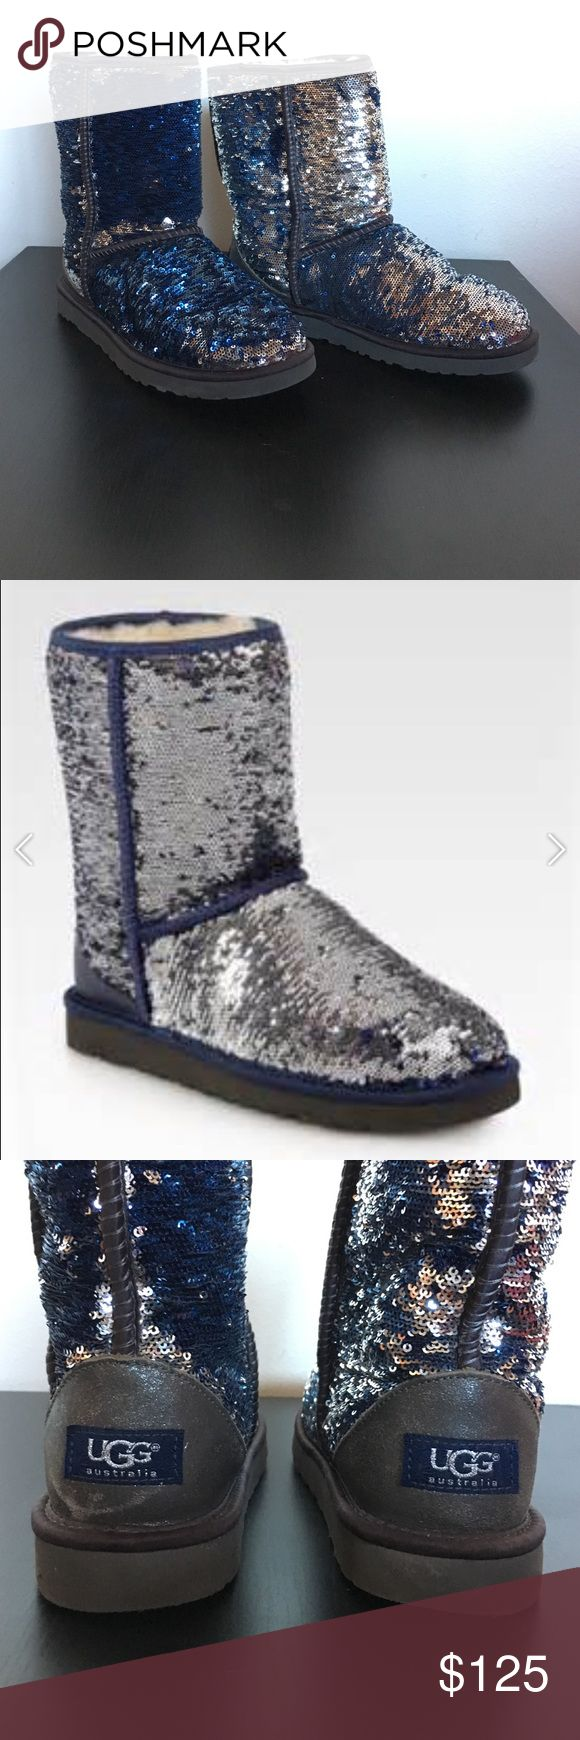 Sequined original UGG boots Like new worn only a couple of times authentic Uggs boots. Sequins flip so one way they look silver & the other they look blue UGG Shoes Winter & Rain Boots